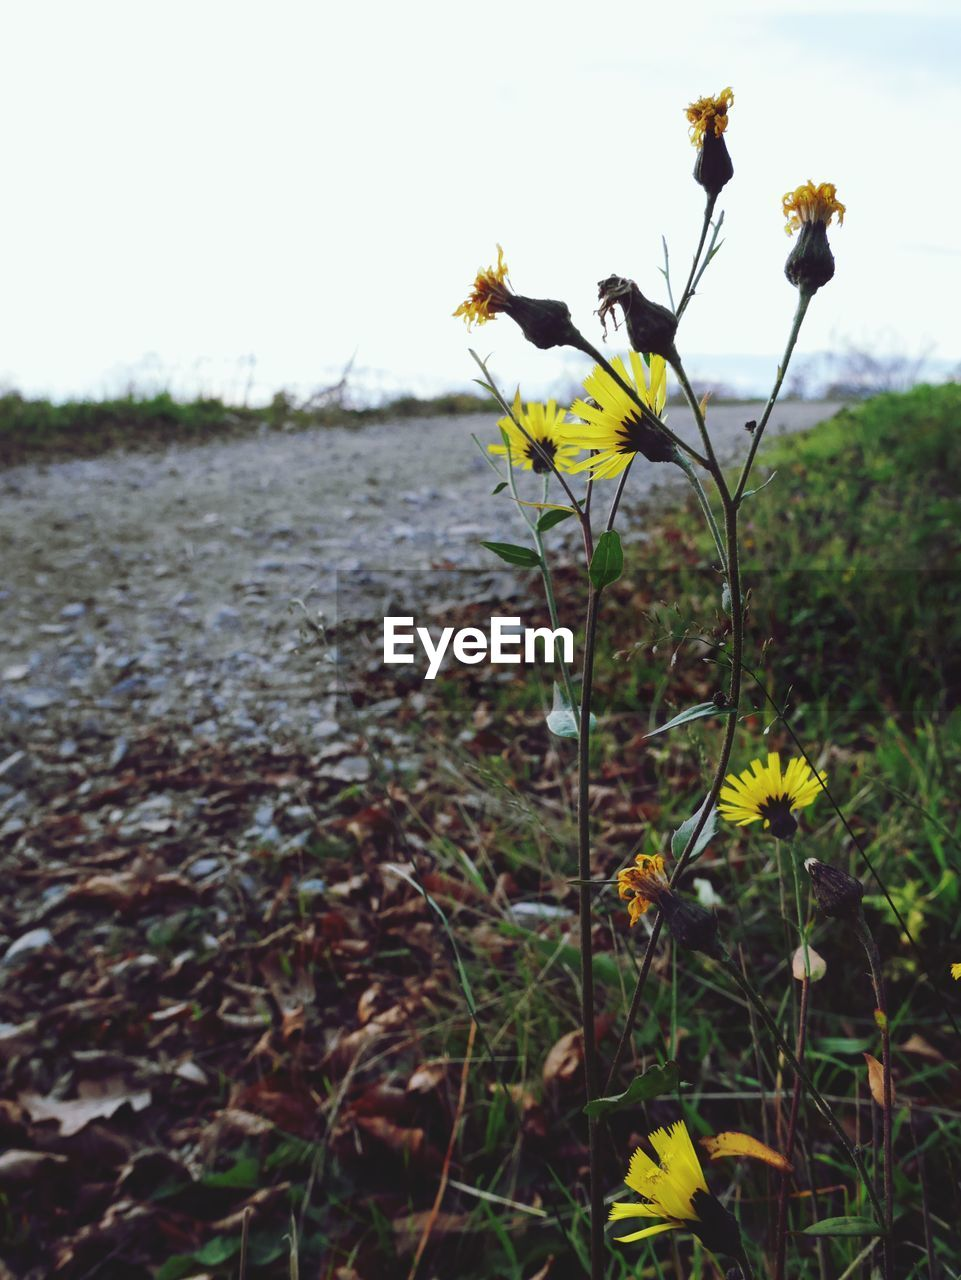 flower, nature, growth, fragility, plant, beauty in nature, outdoors, uncultivated, field, yellow, no people, petal, freshness, tranquility, flower head, day, close-up, blooming, sky, water